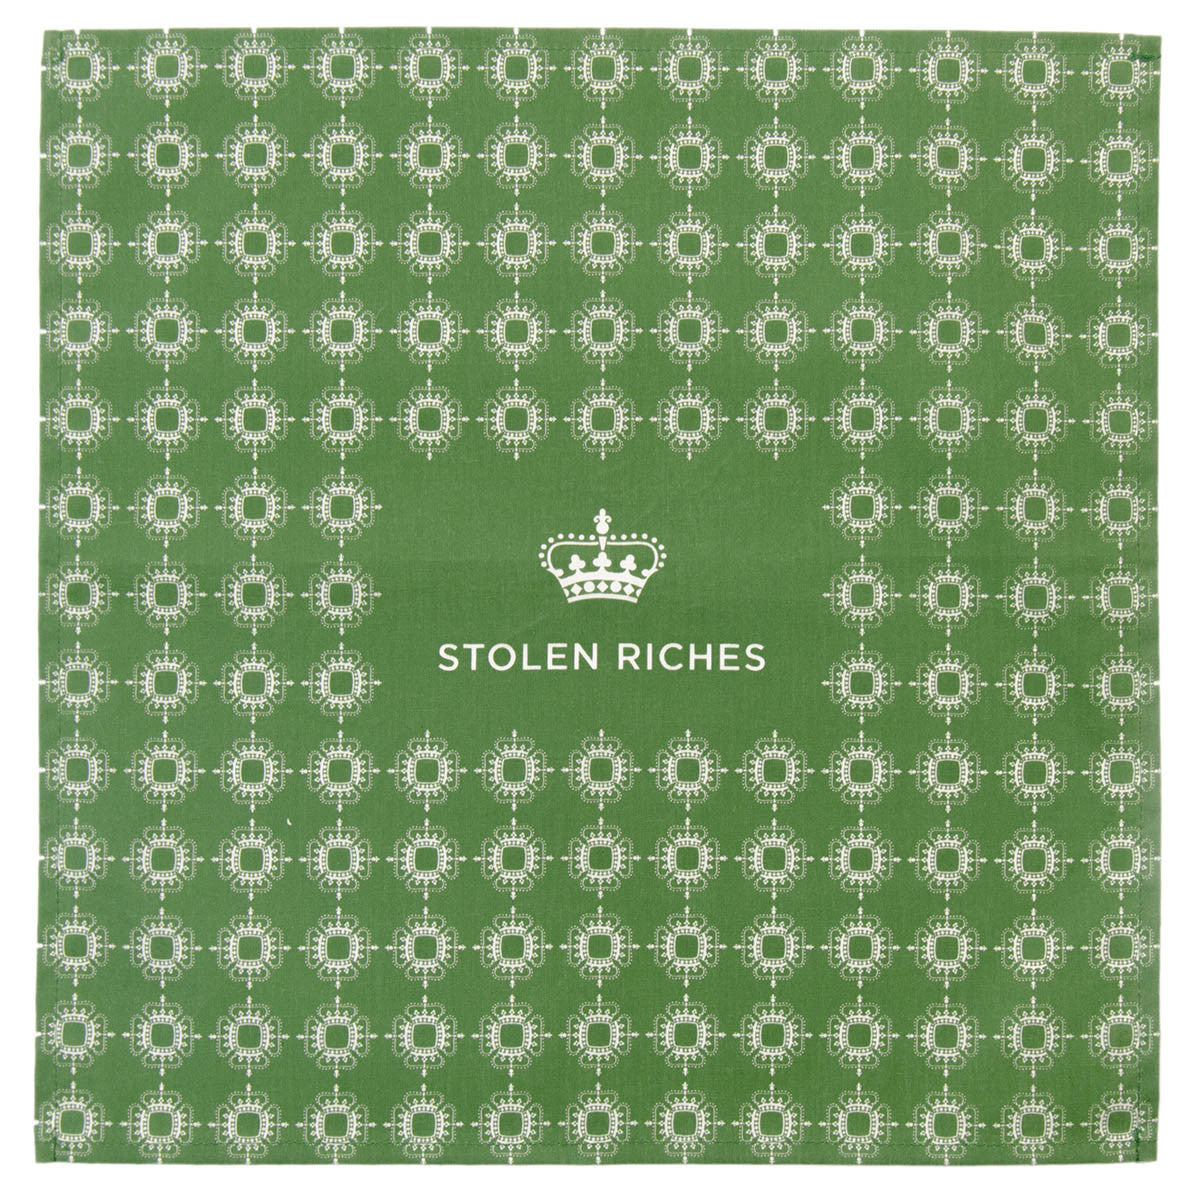 "Moville Green - Crown Pattern Pocket Square (13""x13"") - Stolen Riches / CA"